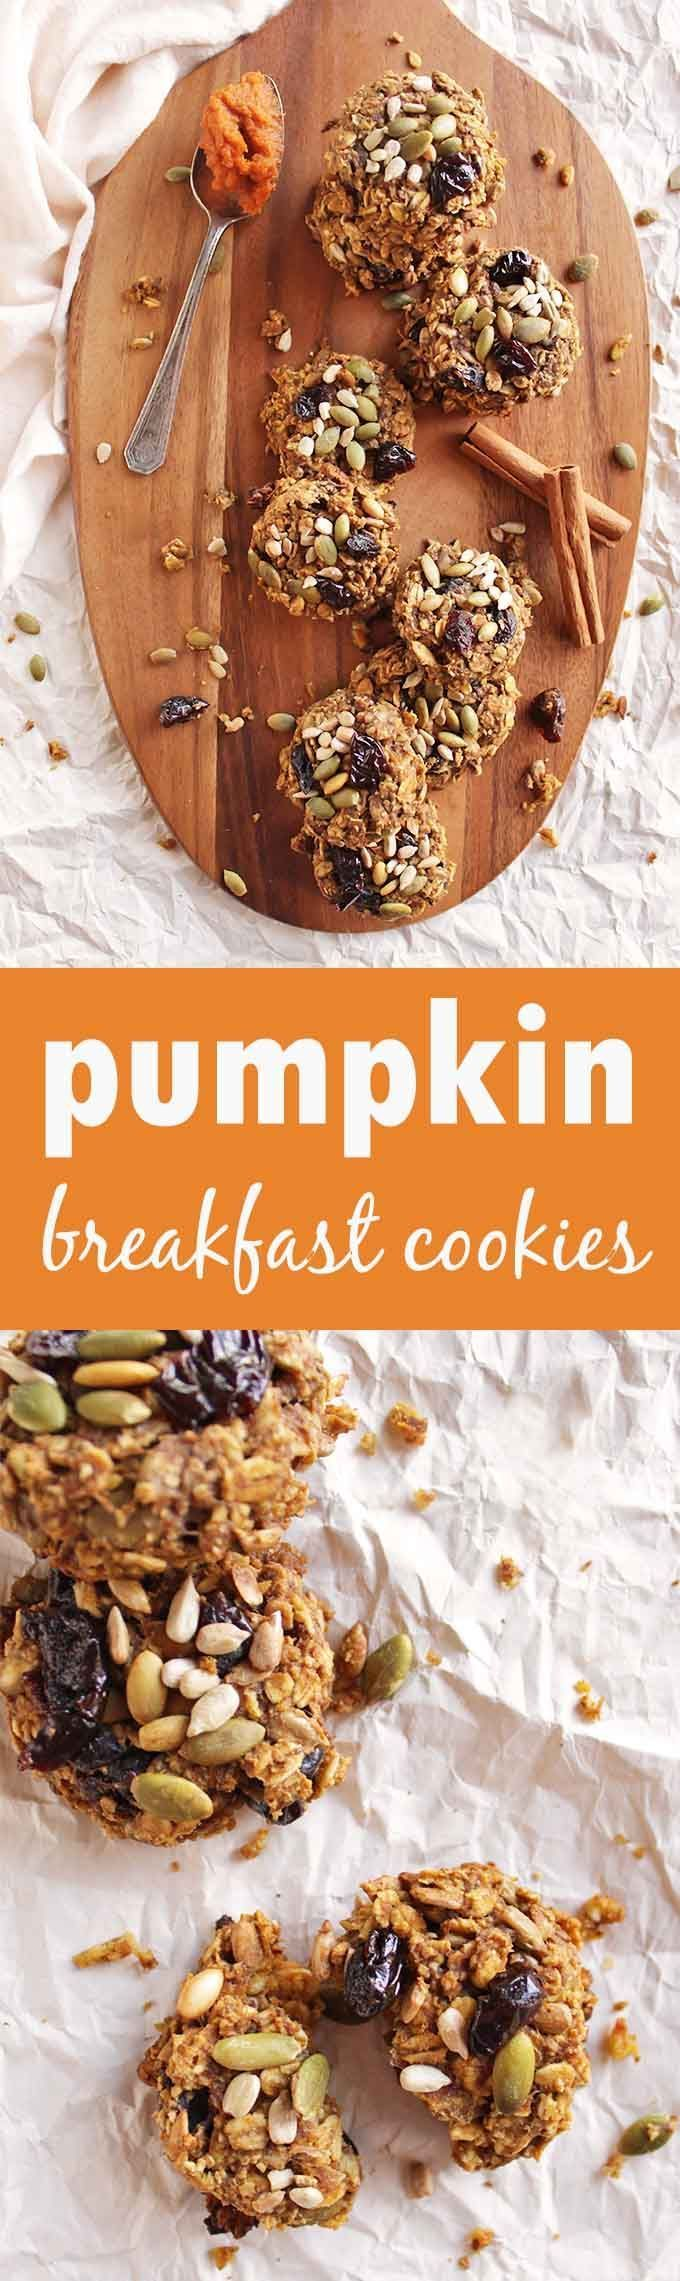 Pumpkin Breakfast Cookies (Gluten Free + Vegan) Pumpkin breakfast cookies are packed with nutrient dense ingredients to give you energy. They are made with REAL pumpkin. and packed with all those warming spices. Perfect fall recipe!